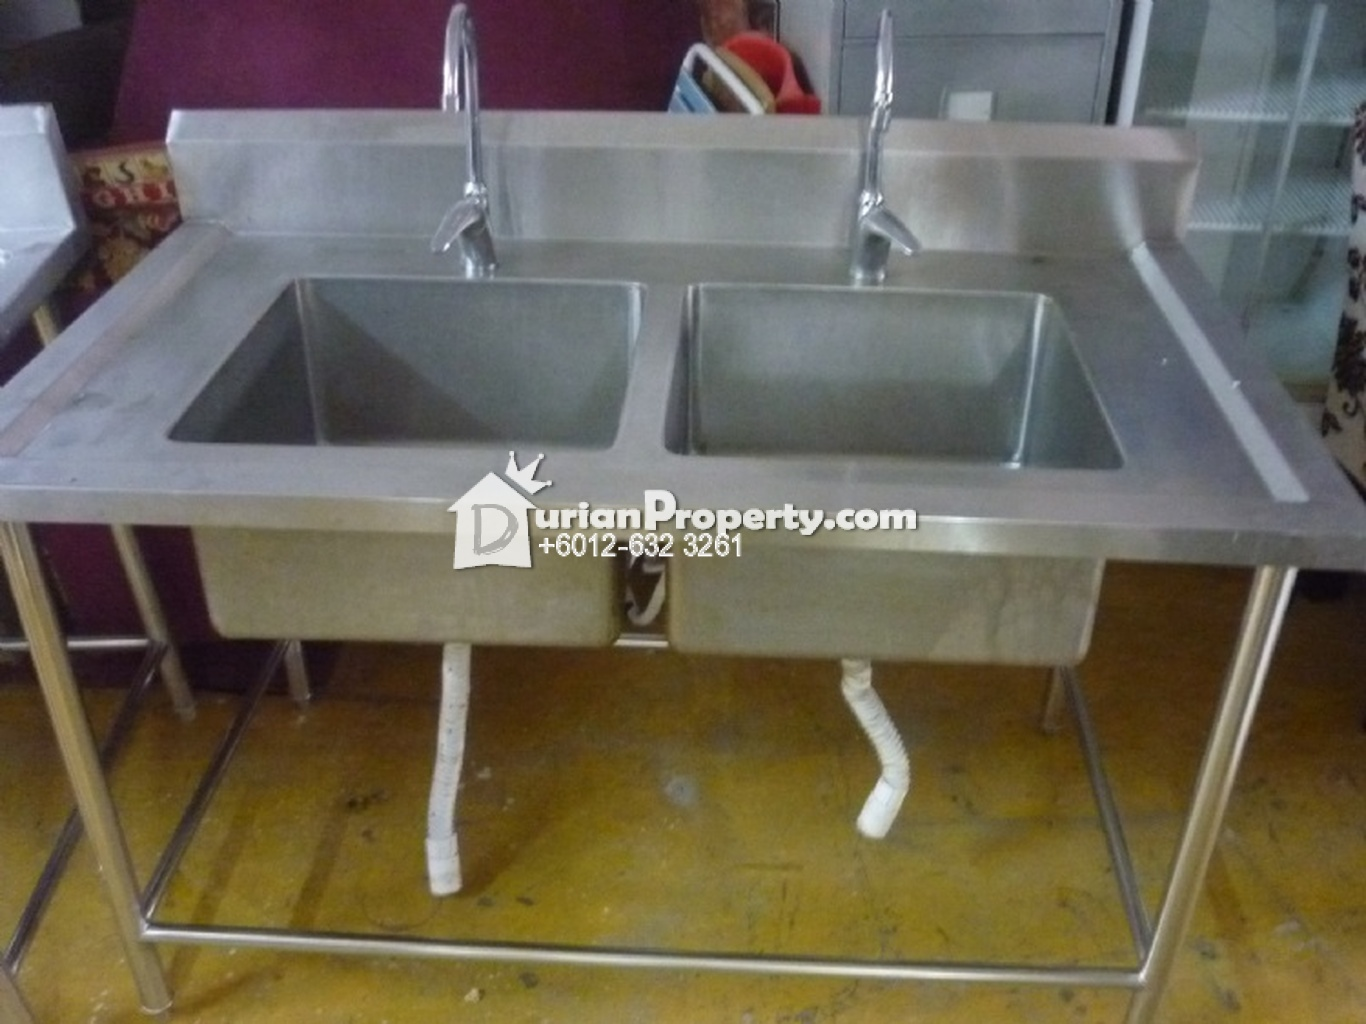 Stainless Steel Equipment-Stainless Steel 2 Tank Water Basin with Tap For Sale